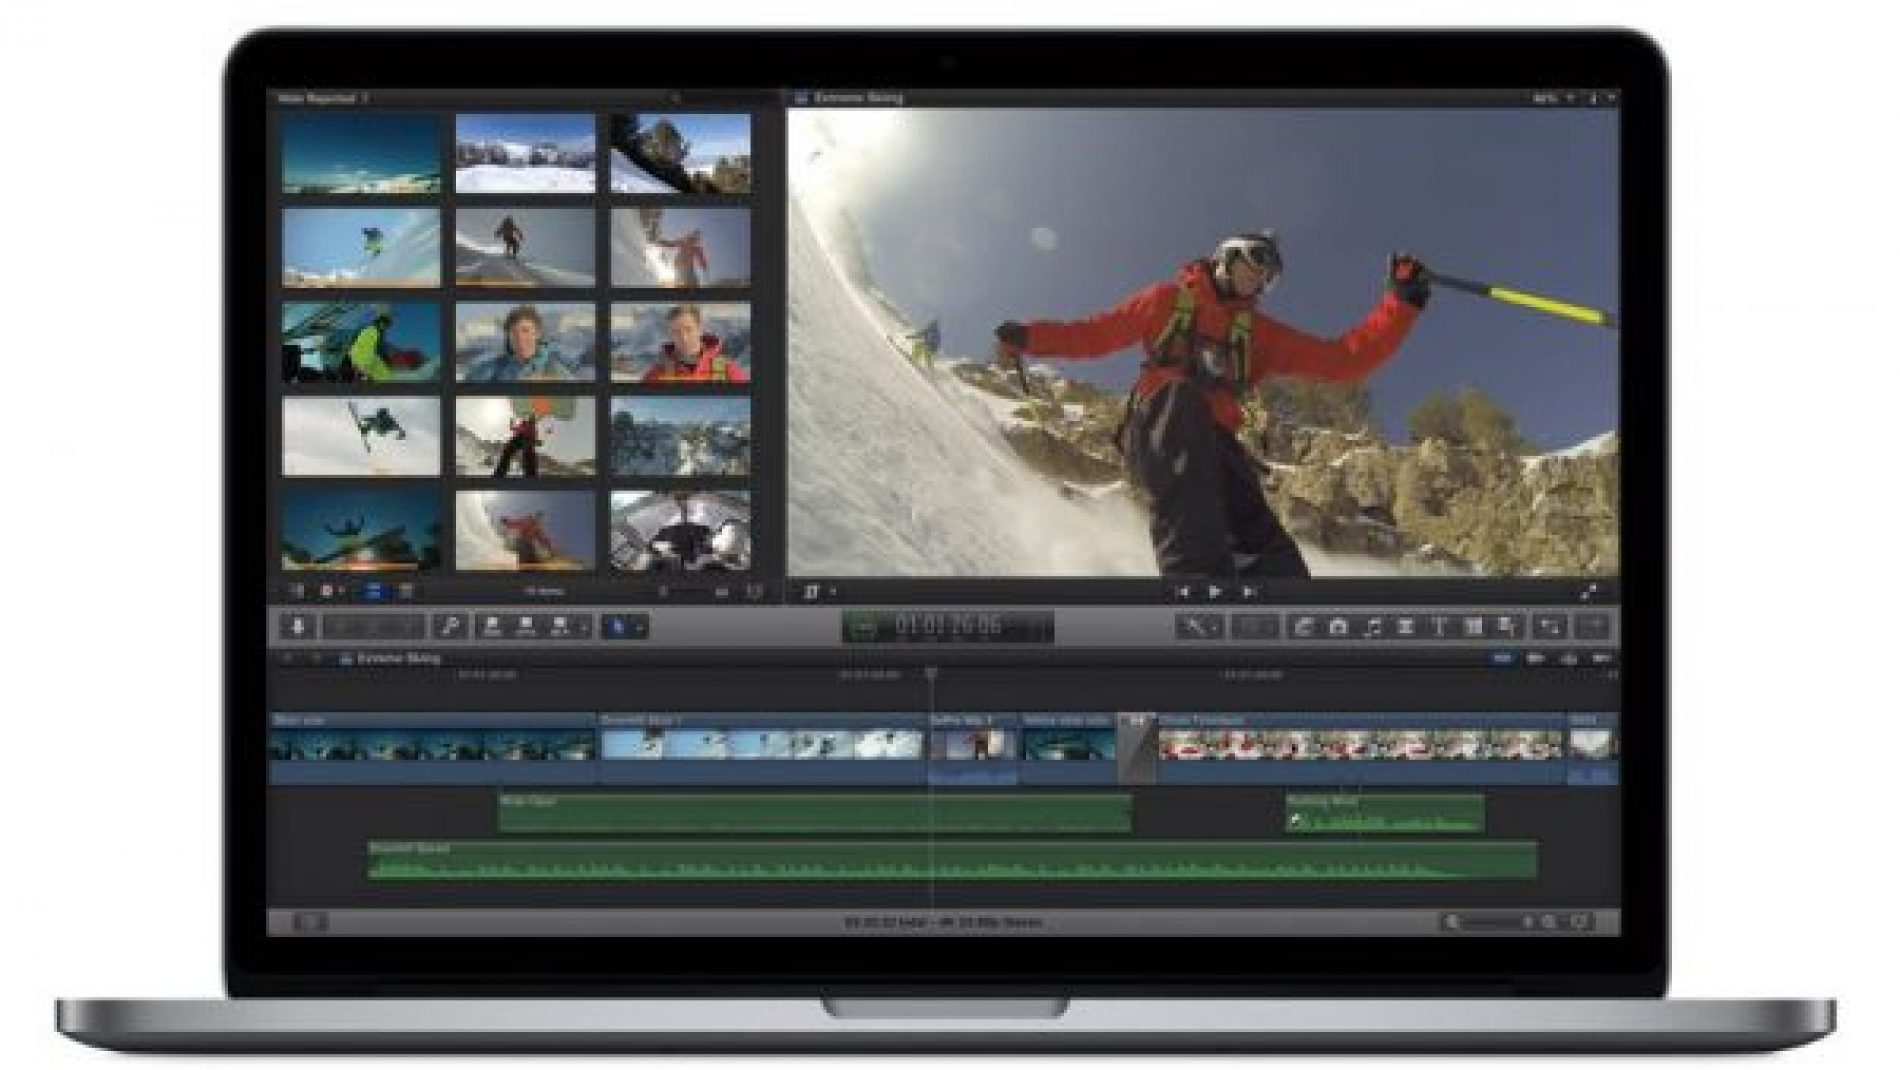 Top 5 Laptops for Video & Photo Editing